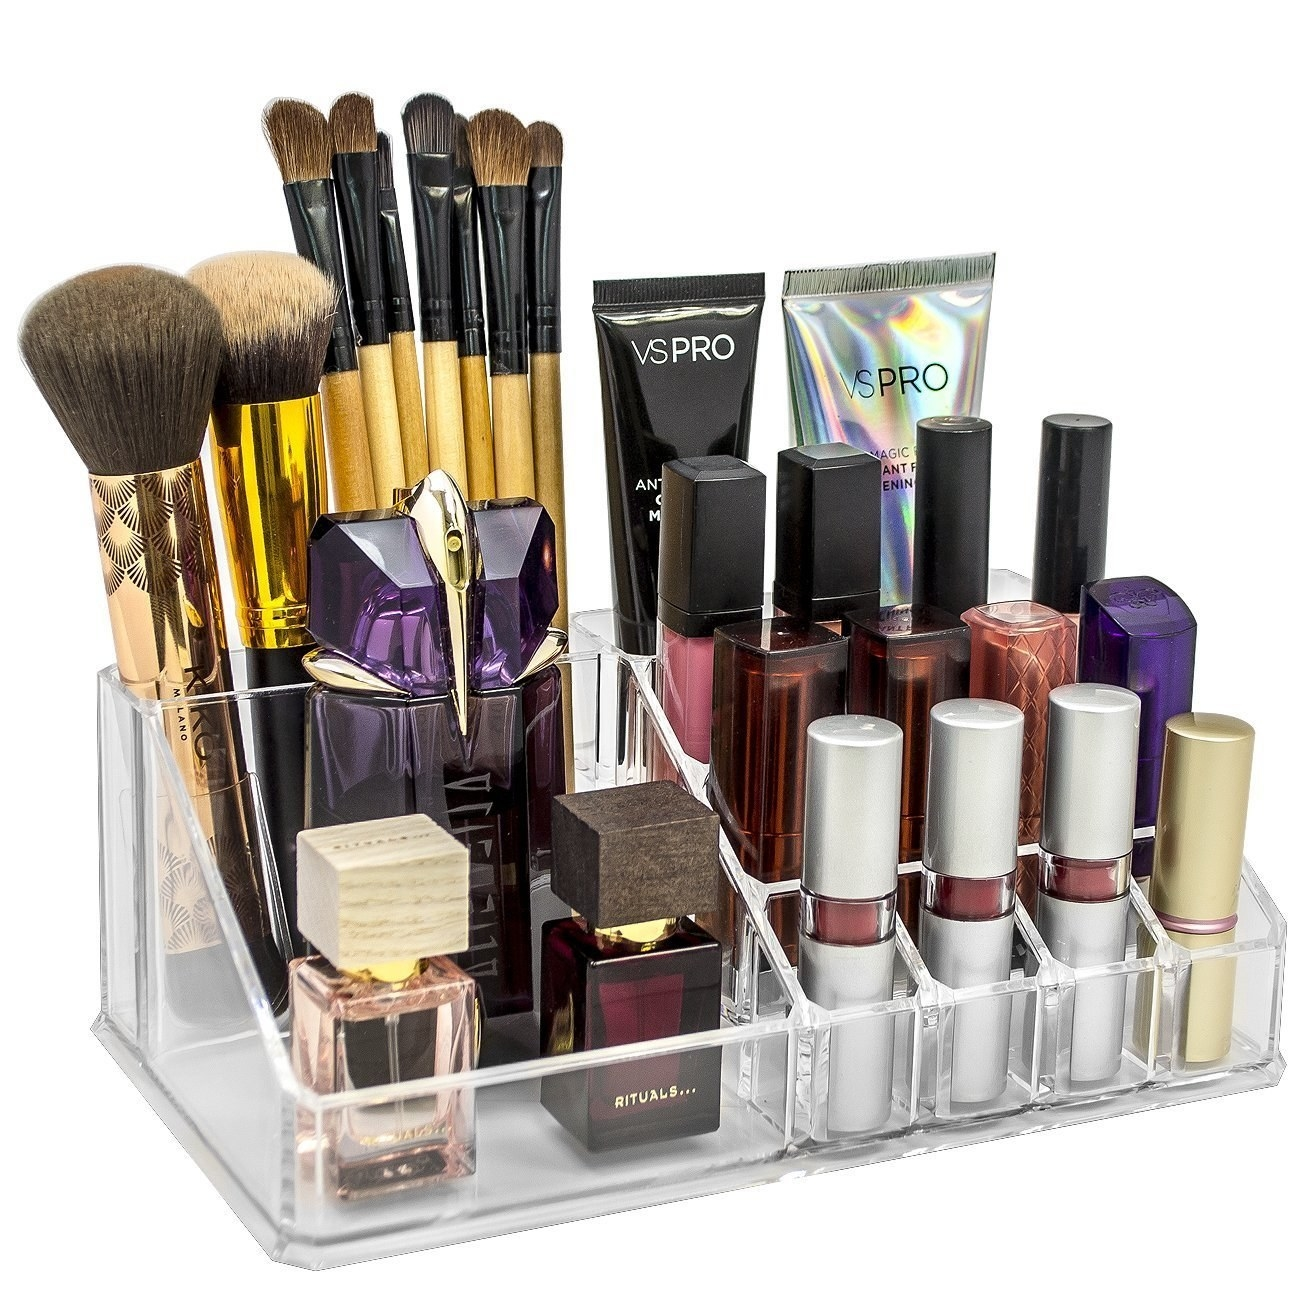 A makeup organiser with makeup in it